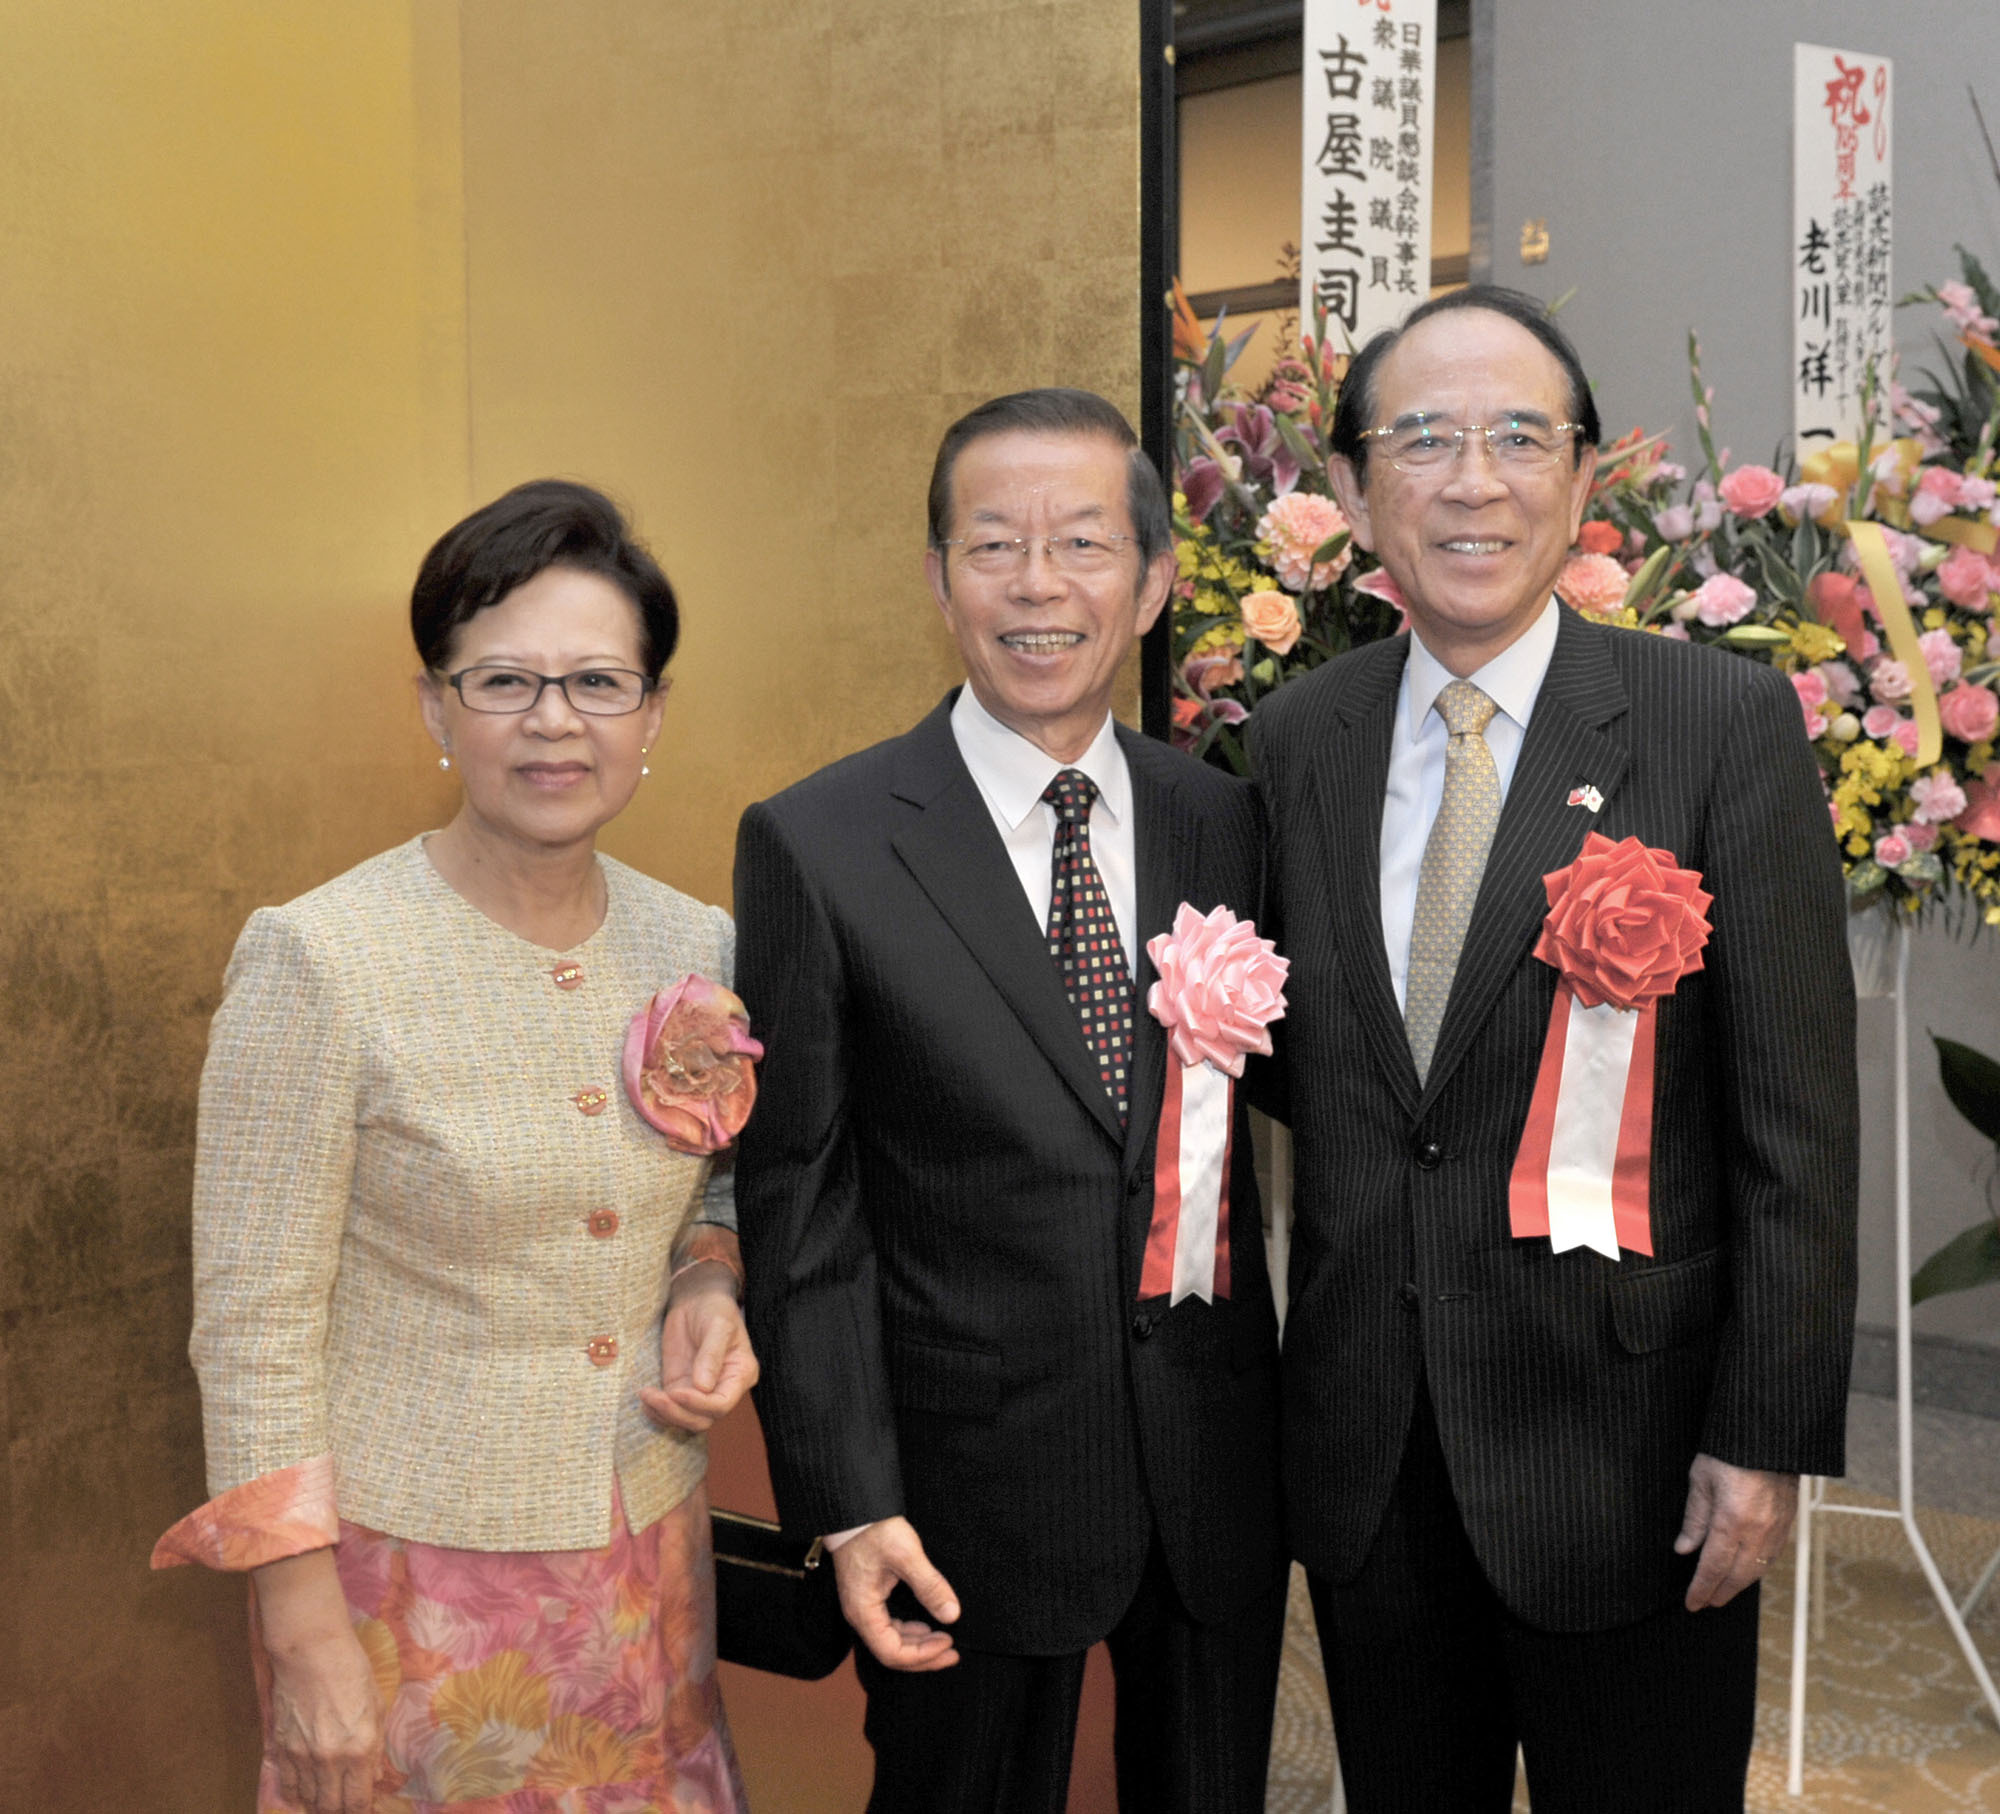 "Representative of the Taipei Economic and cultural Representative Office in Japan Frank C.T. Hsieh (center) and his wife Fang-Chih Hsieh Yu welcome Interchange Association, Japan Chairman Mitsuo Ohashi during a reception to celebrate the 105th anniversary of the ""Double Ten"" National Day, when the Xinhai revolution that overthrew the Qing dynasty started on Oct. 10, 1911, at the Palace Hotel Tokyo on Oct. 6. 